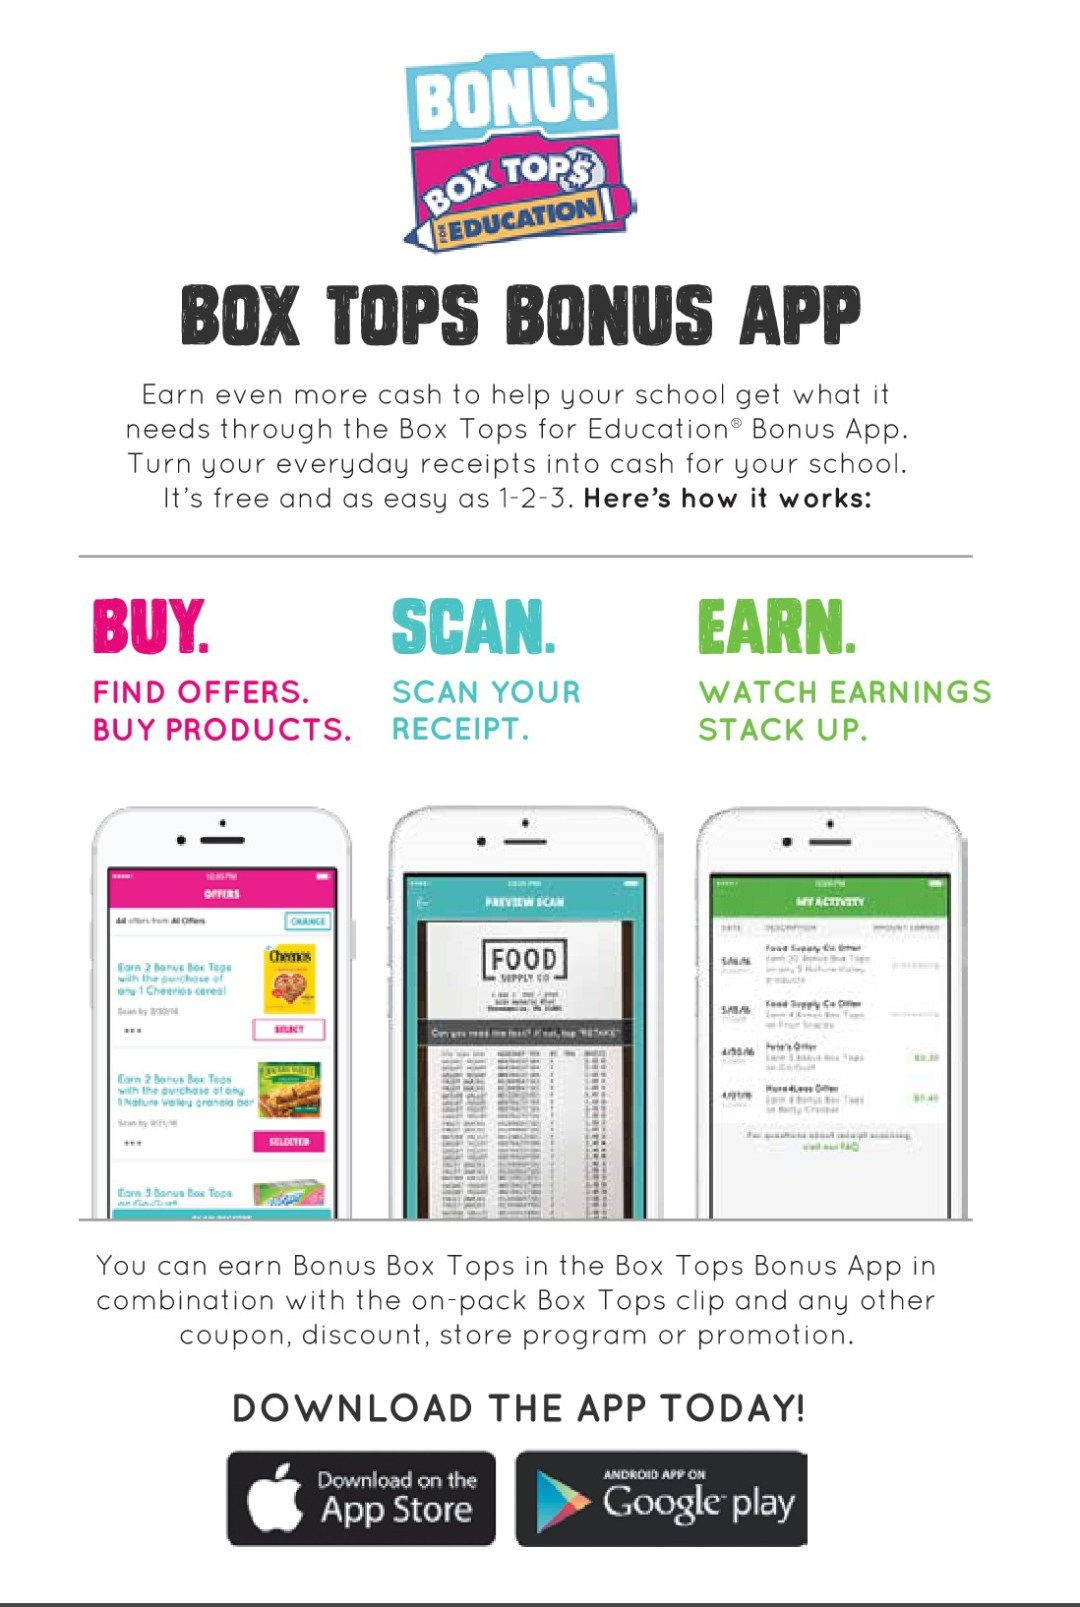 Use the Box Tops App to Get Back to School Ready! BoxTops